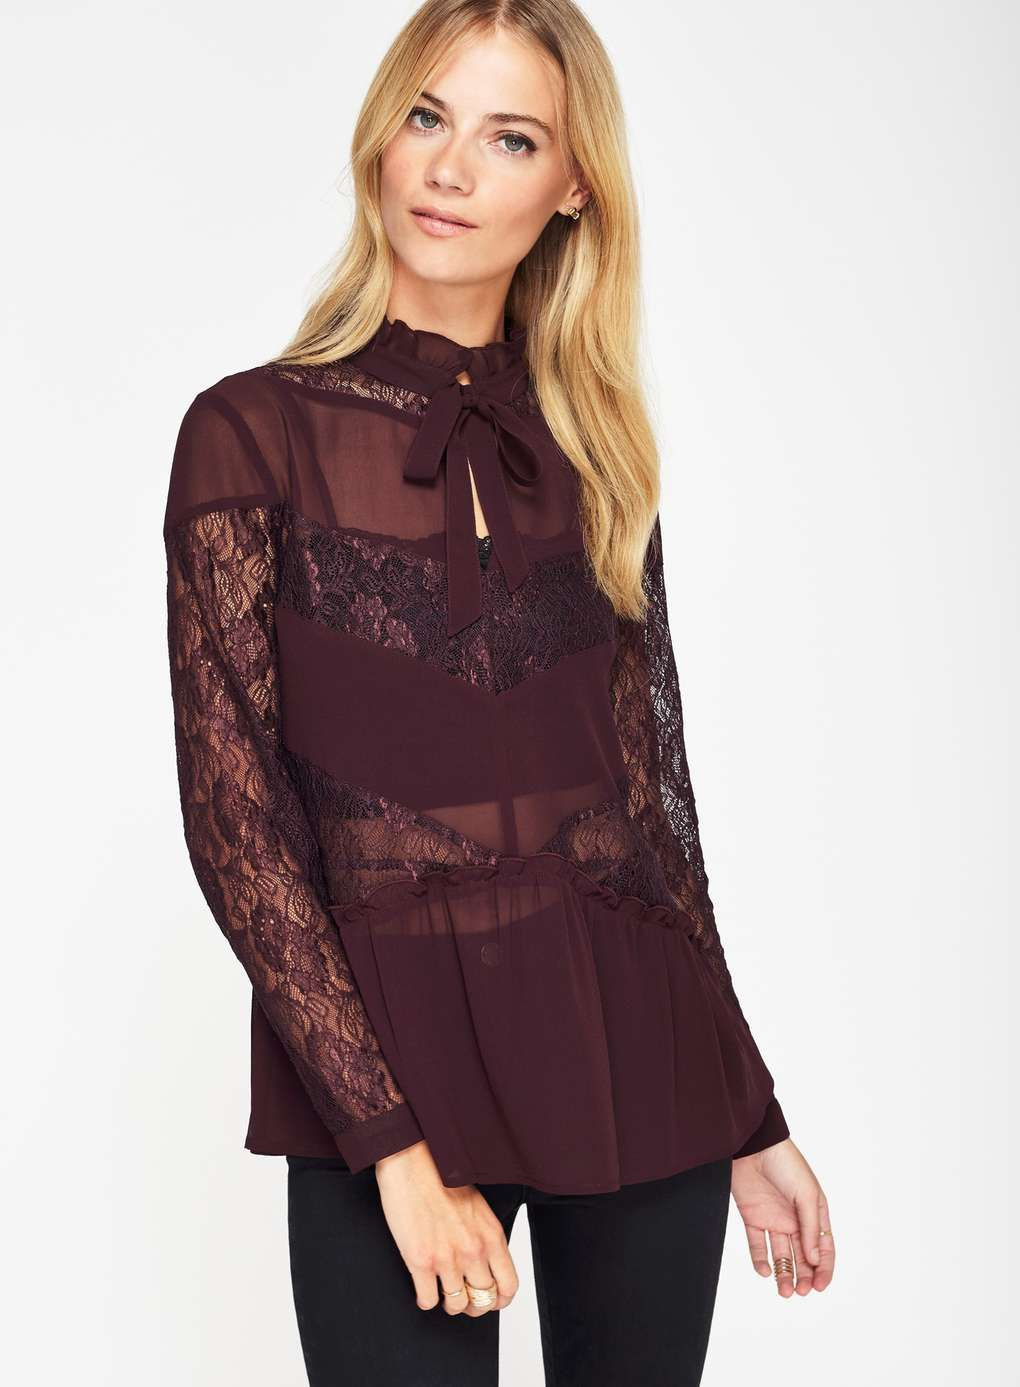 Burgundy Lace Pussybow Blouse Capsule Collections Apparel What